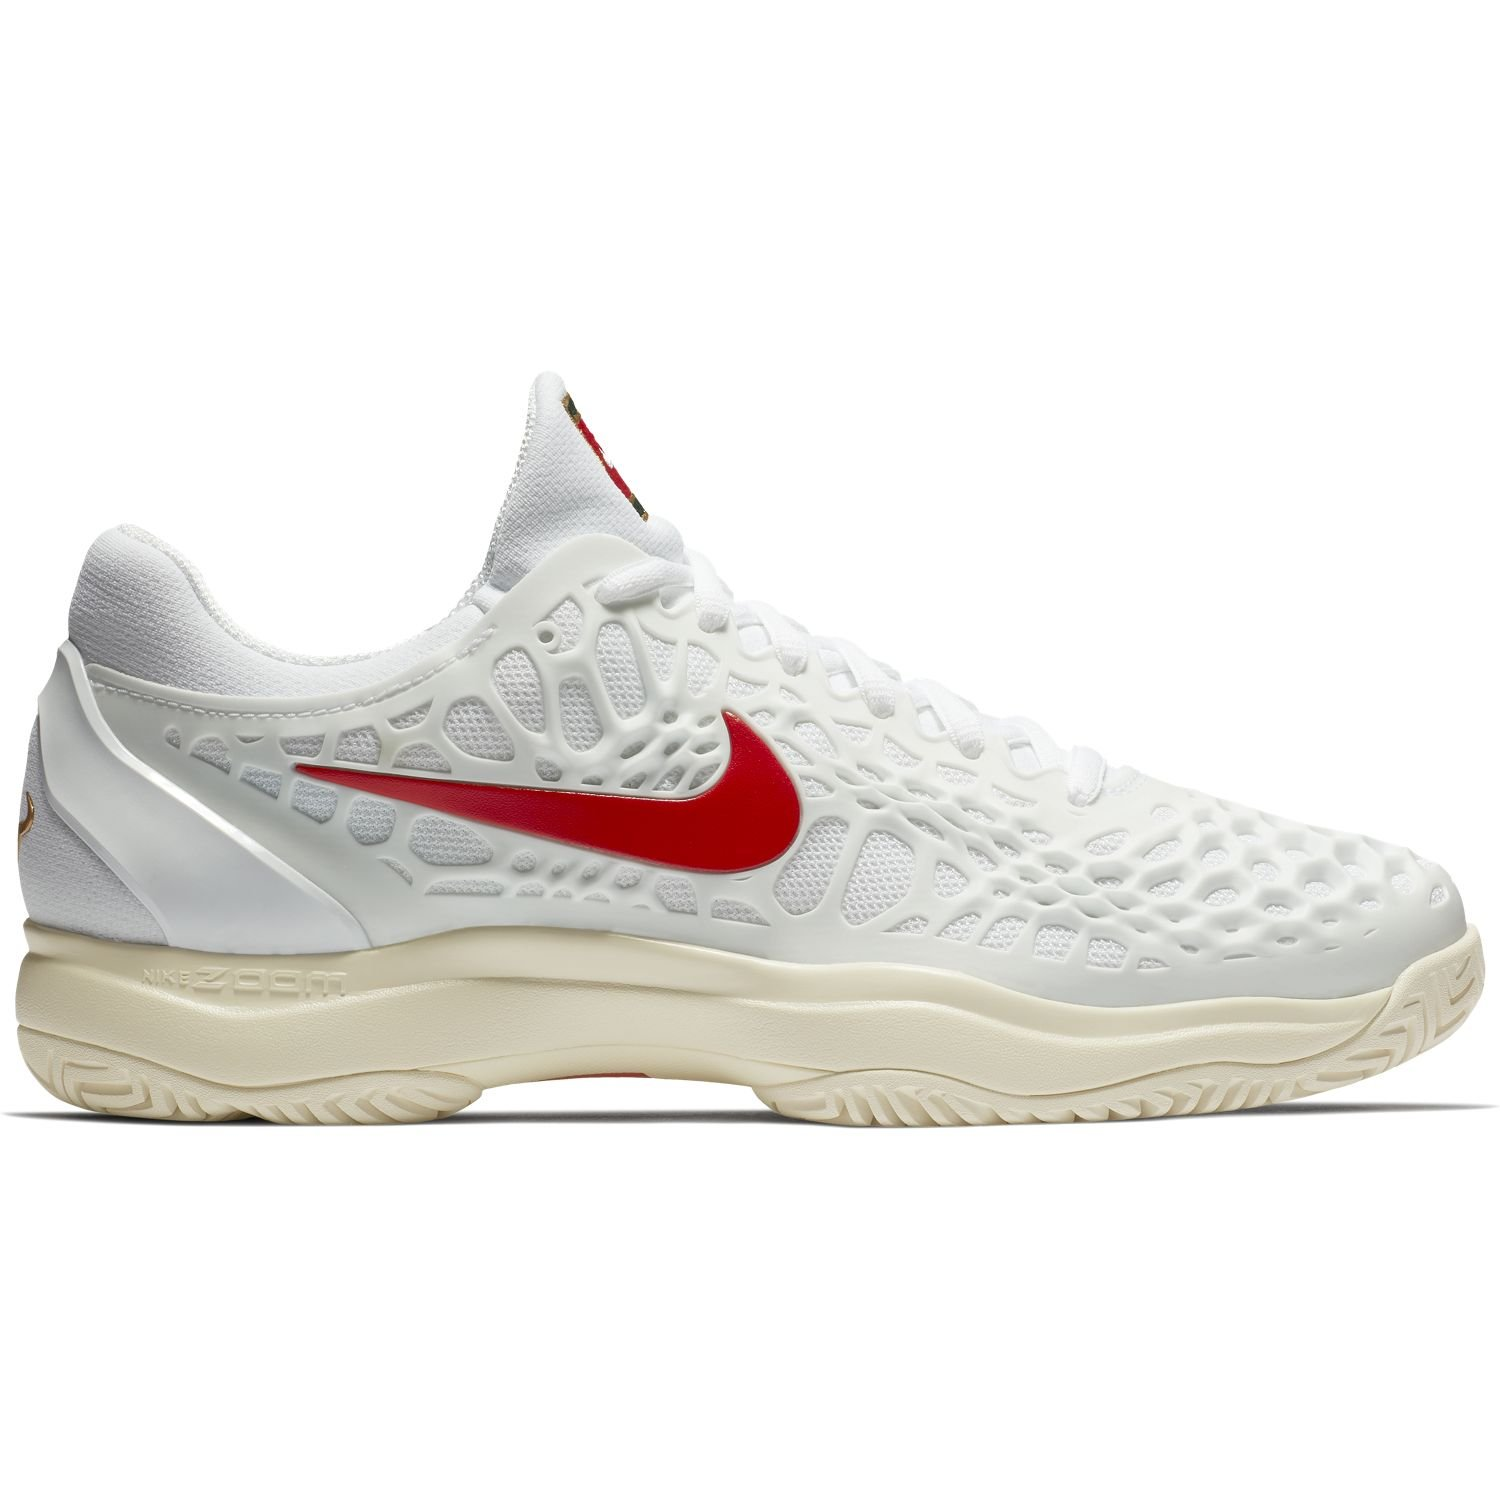 Nike Mens Zoom Cage 3 Tennis Shoes B078B5GDWS 8 D(M) US|White/University Red/Light Cream